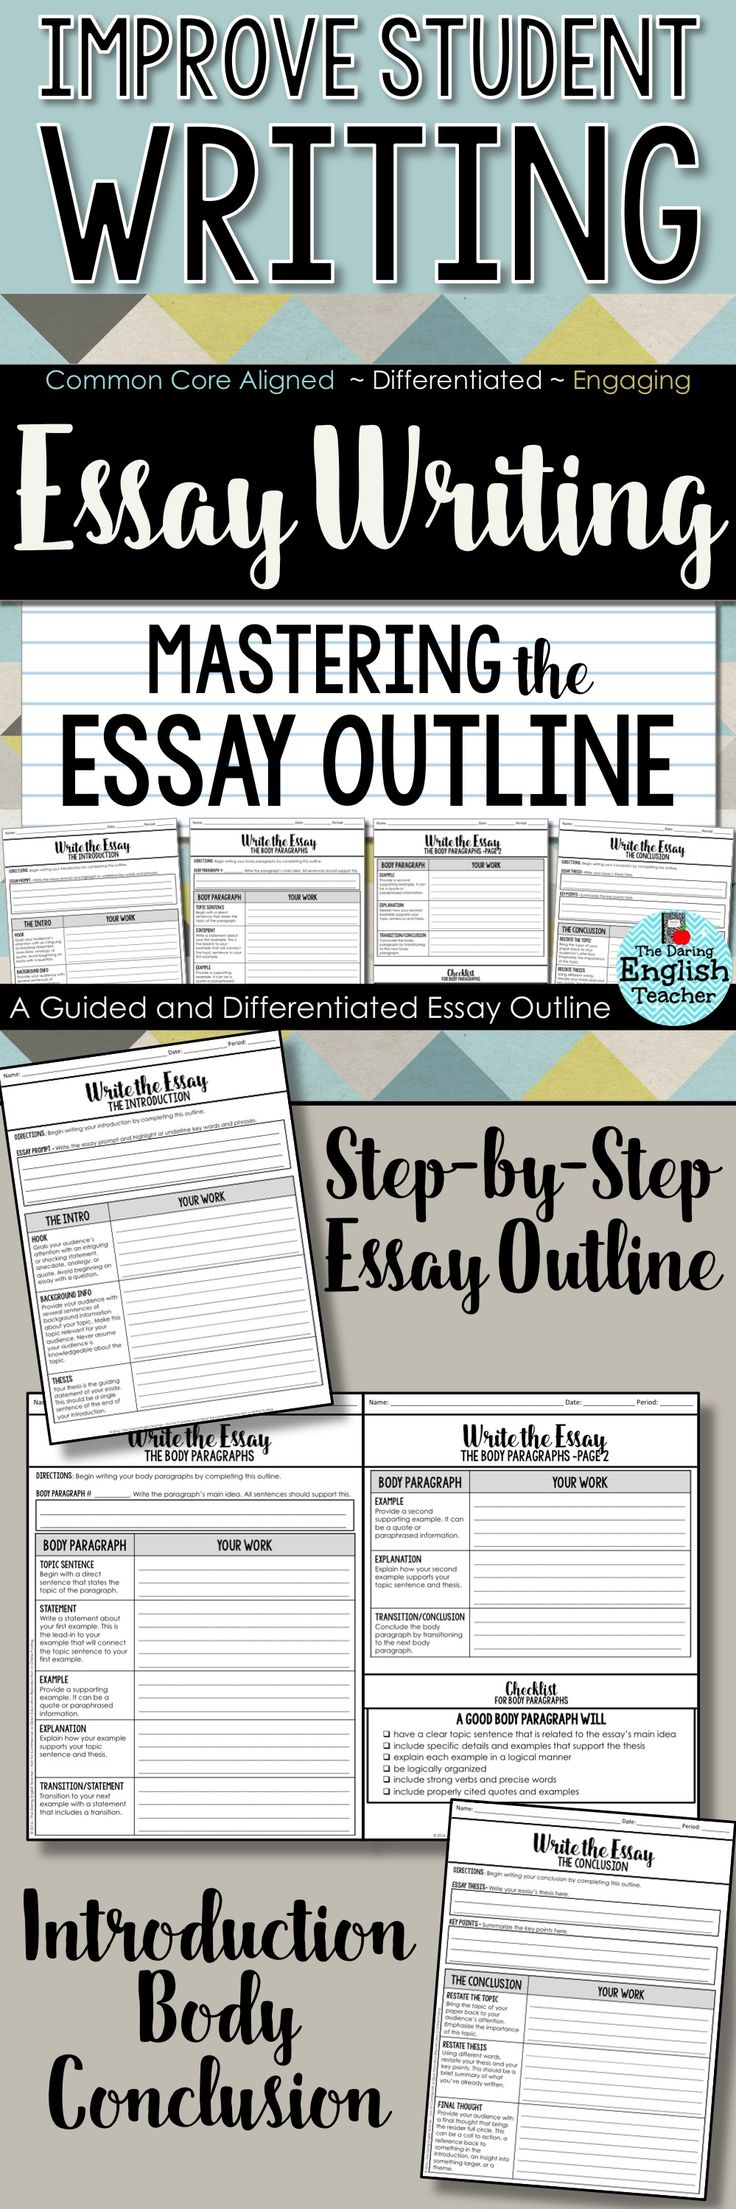 essay writing mastering the essay outline with guided instructions - Teaching Essay Writing To Esl Students